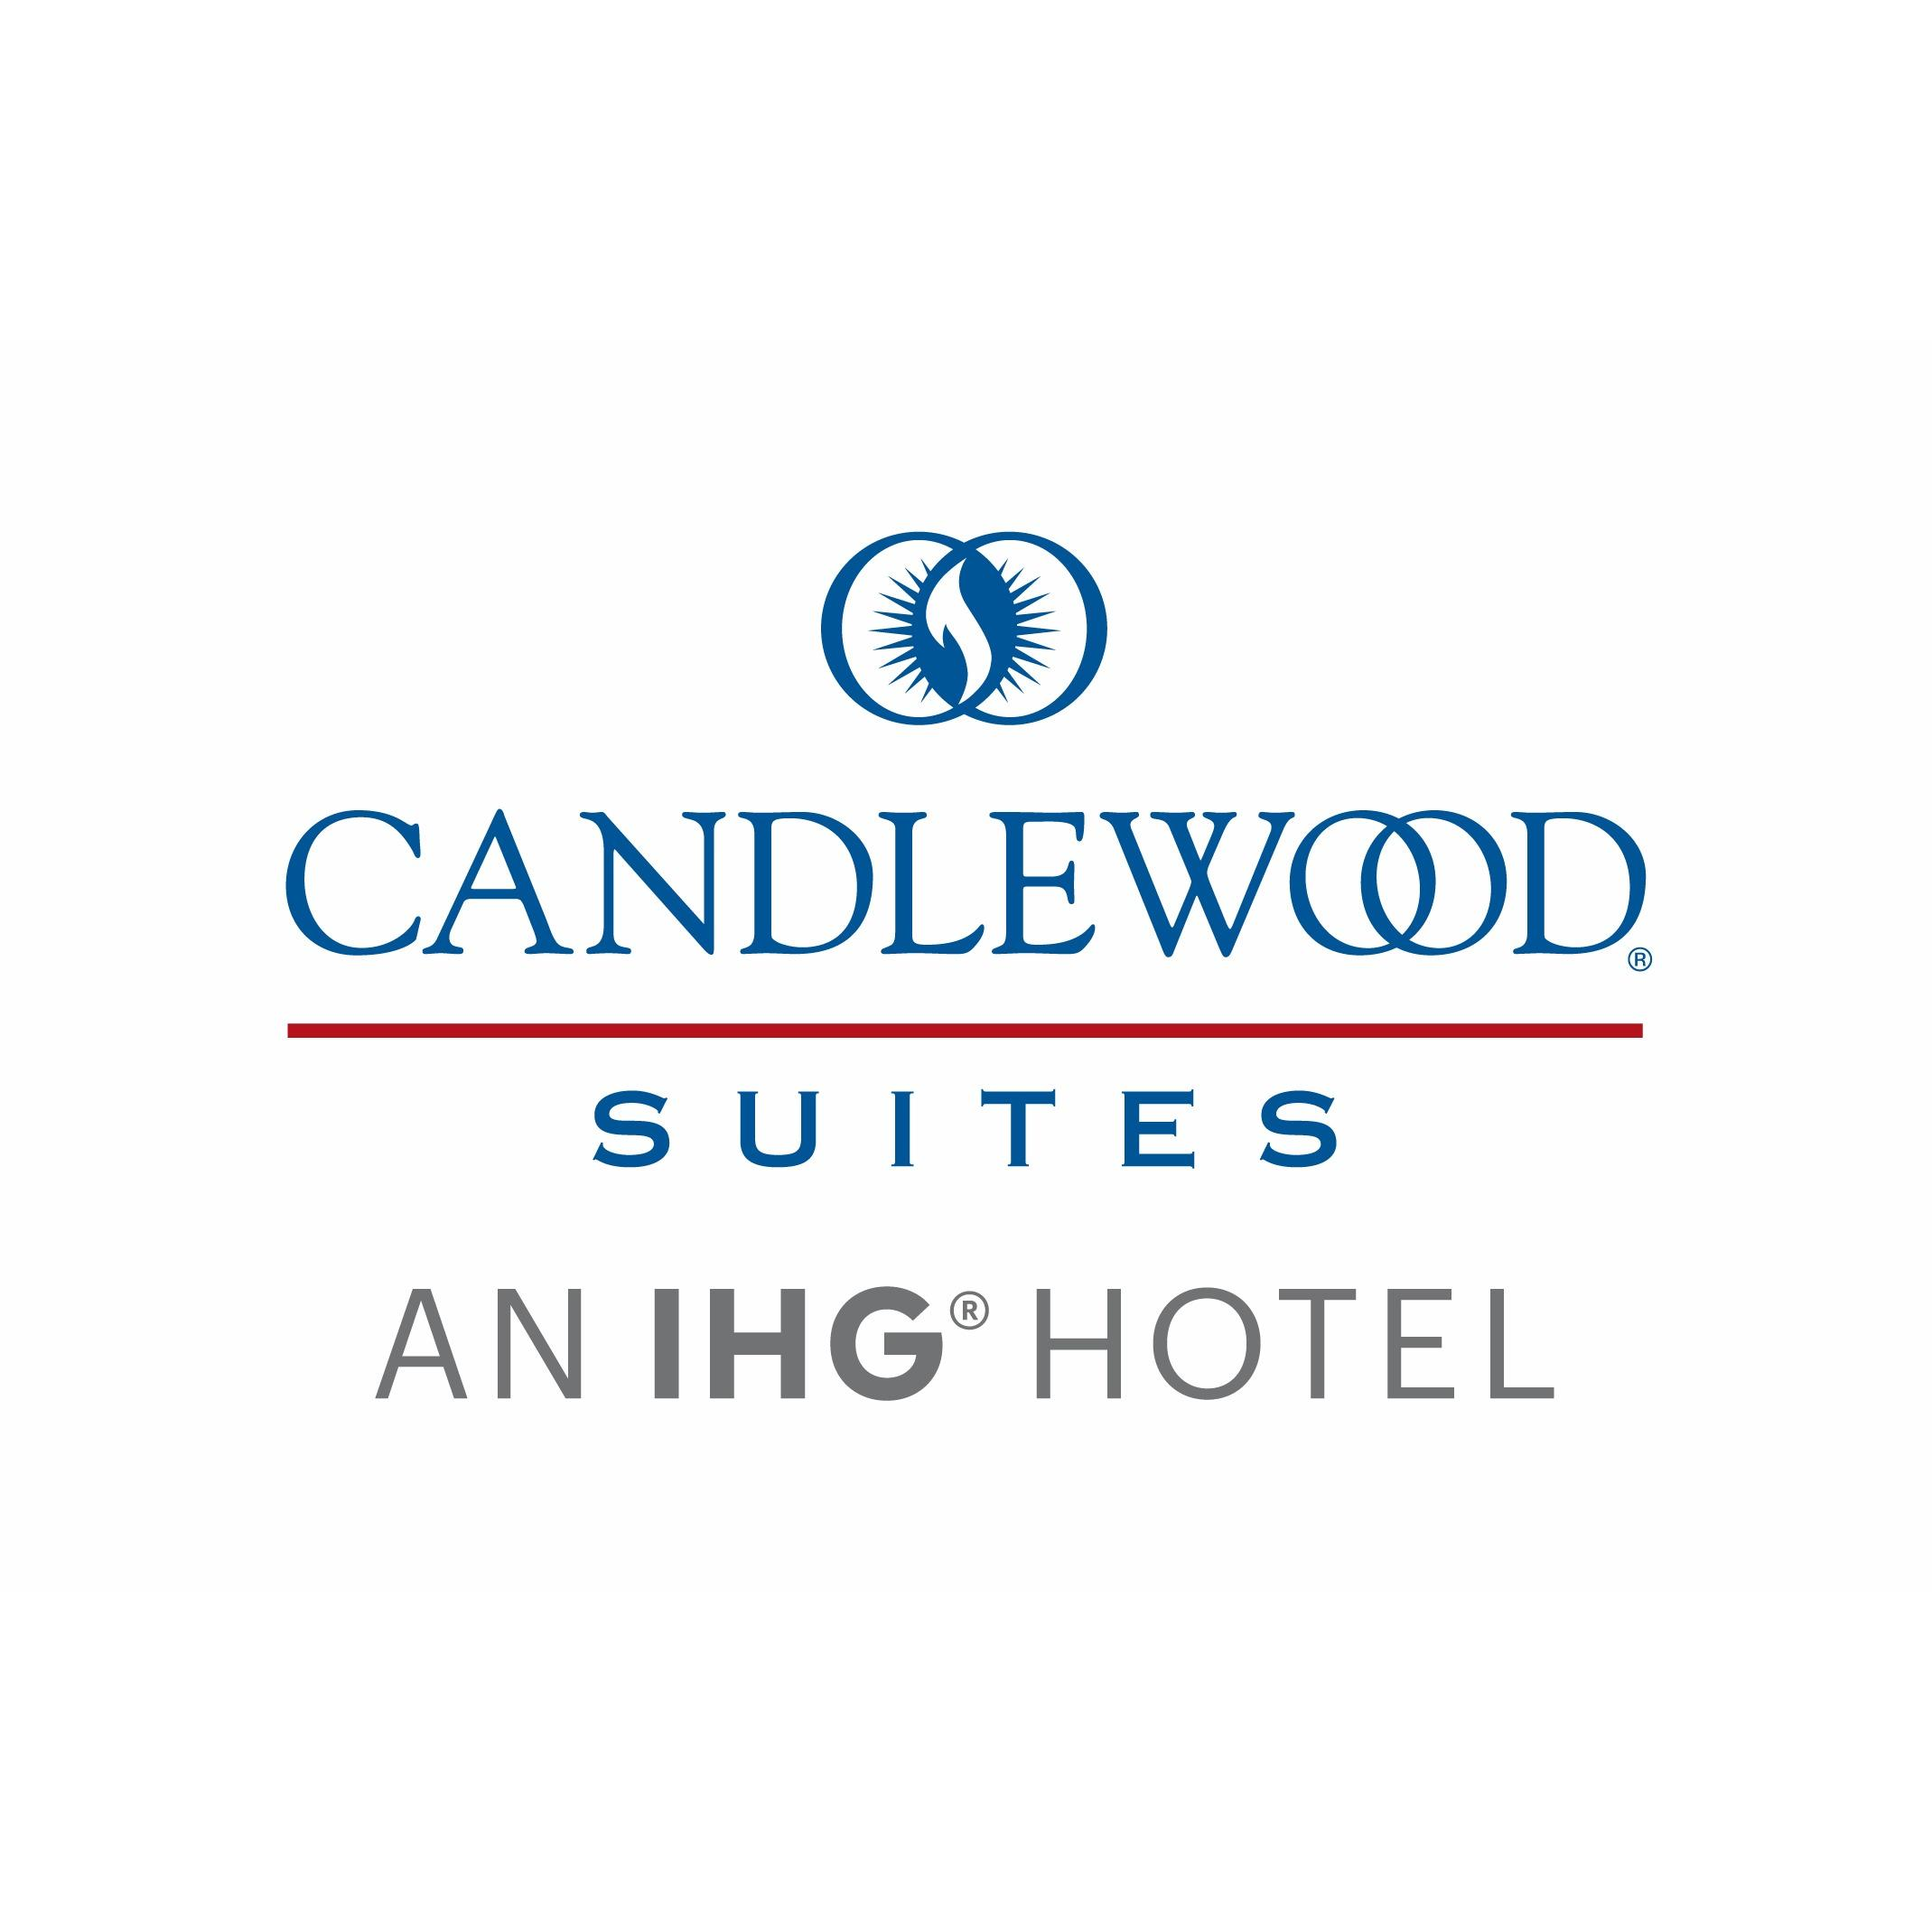 Candlewood Suites Dallas, Ft Worth/Fossil Creek - Fort Worth, TX 76137 - (817)838-8229 | ShowMeLocal.com